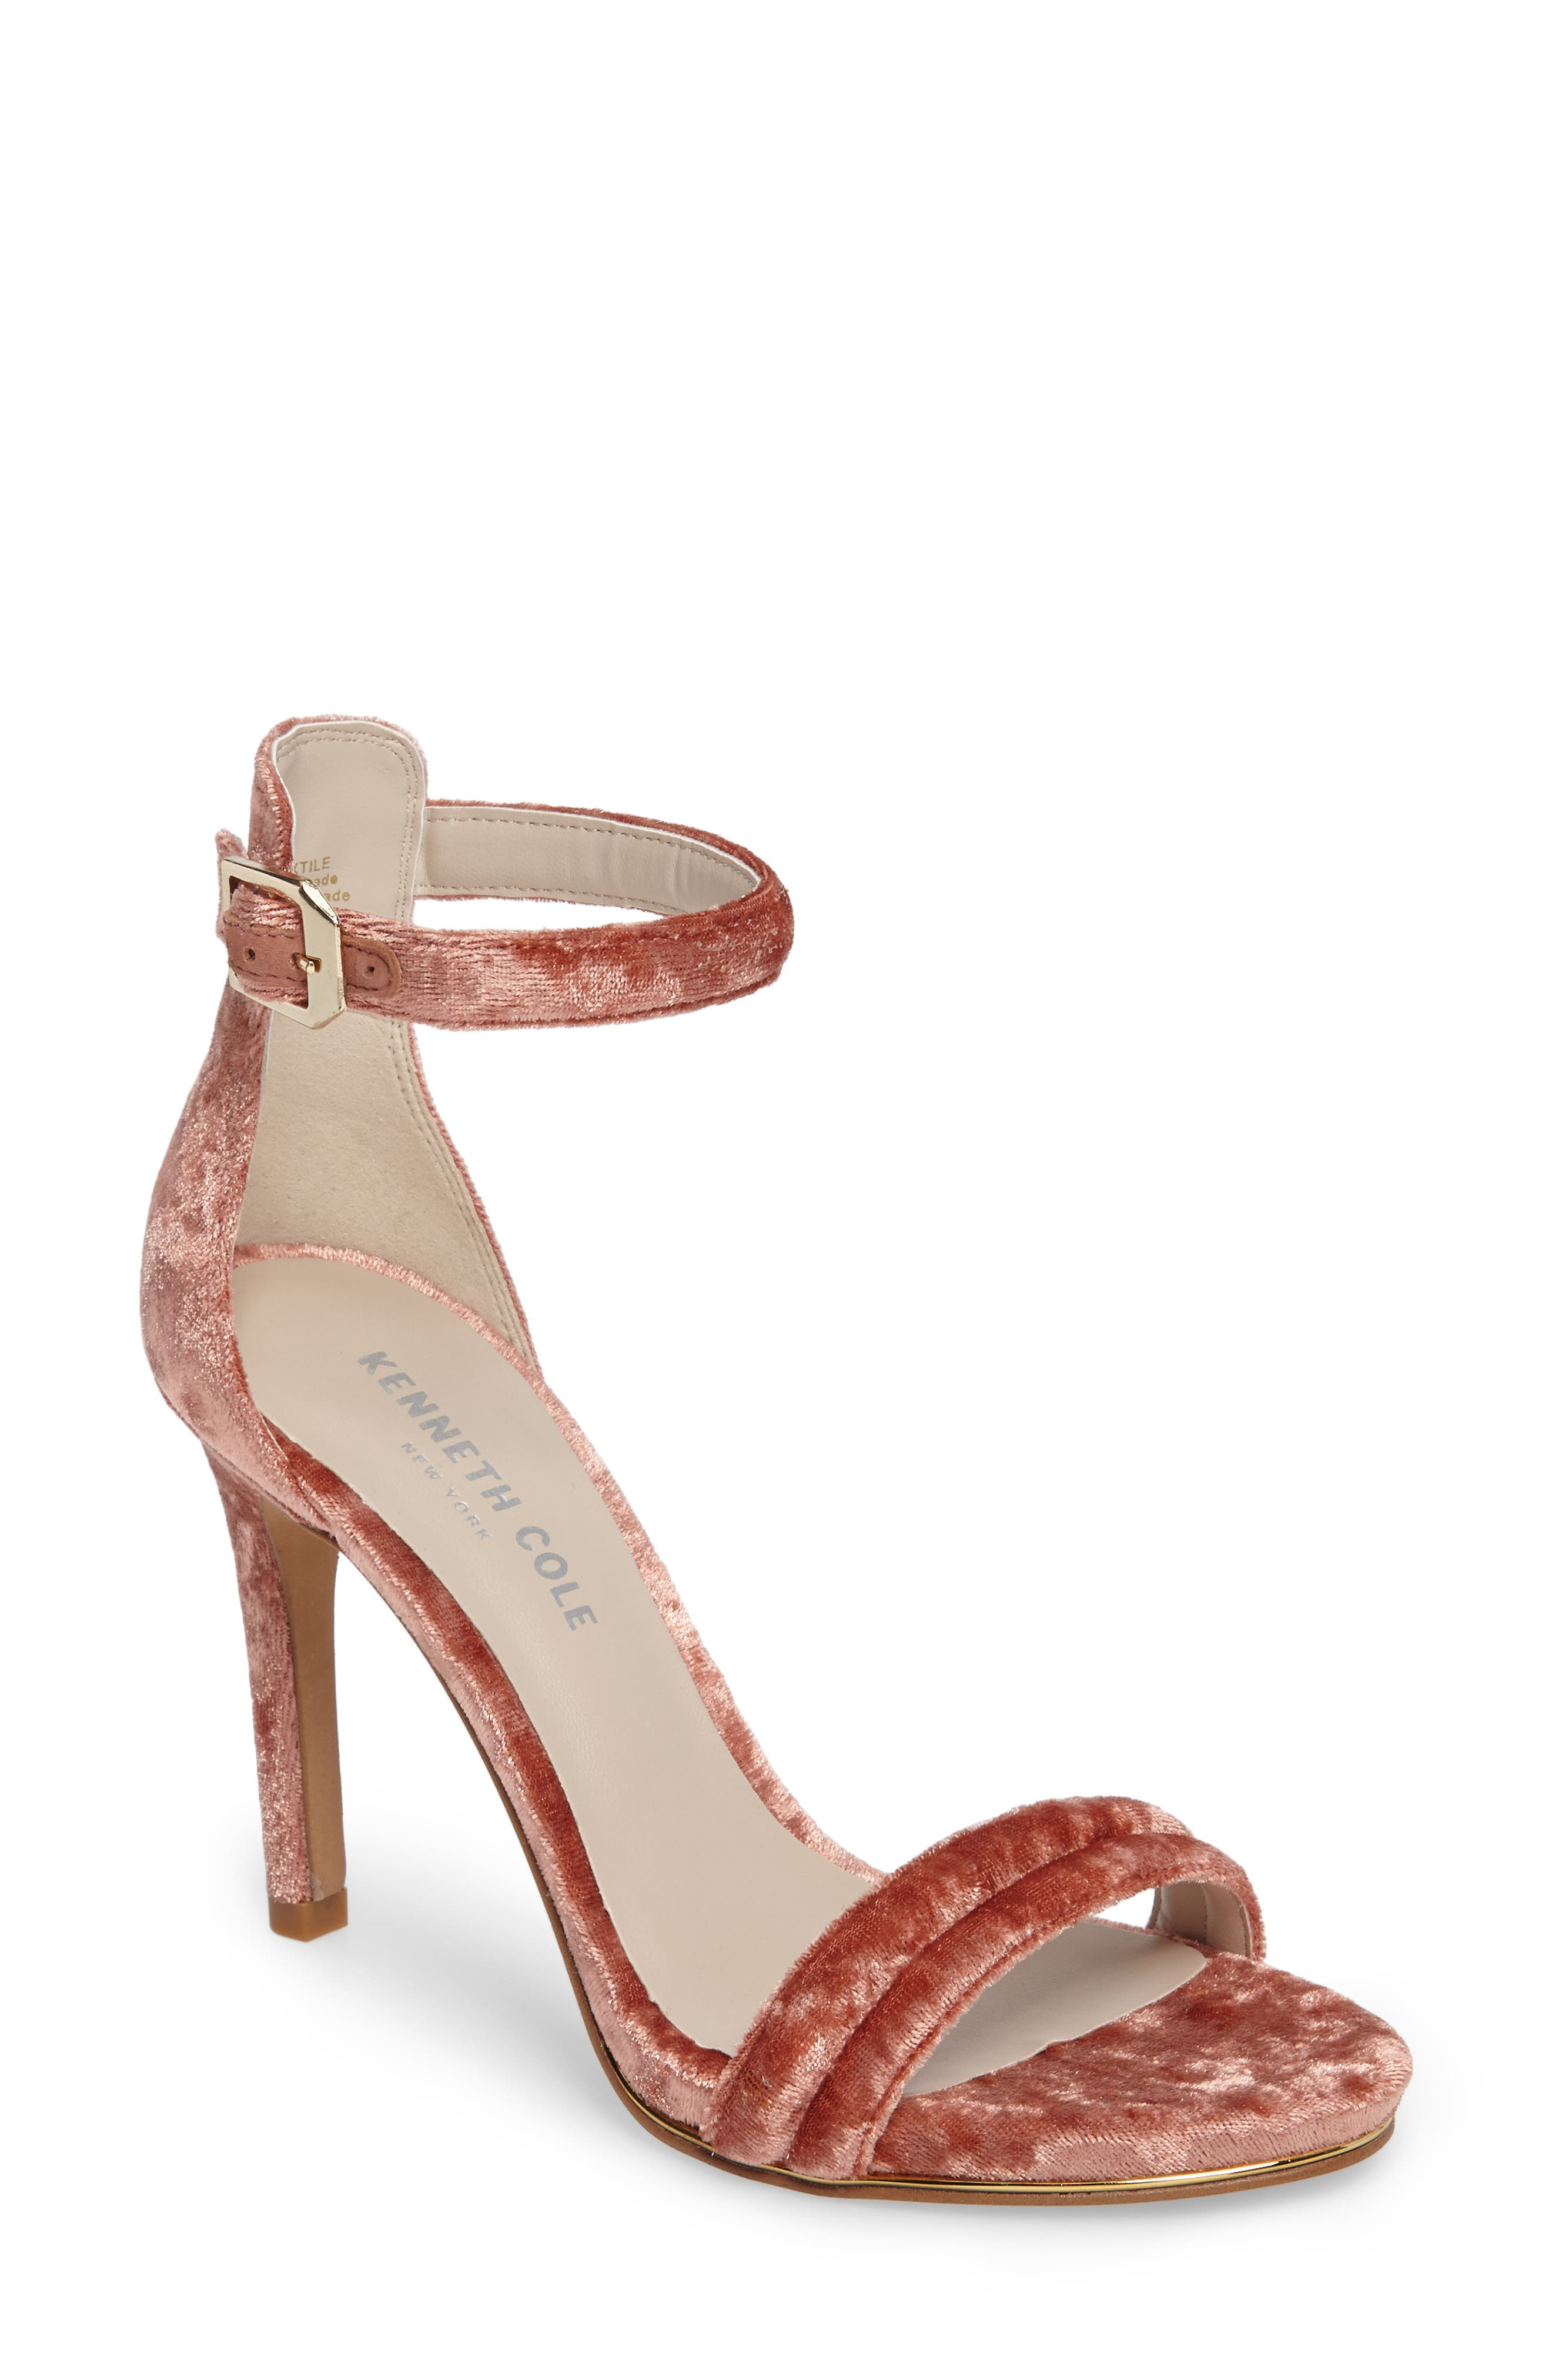 Main Image - Kenneth Cole New York 'Brooke' Sandal (Women)